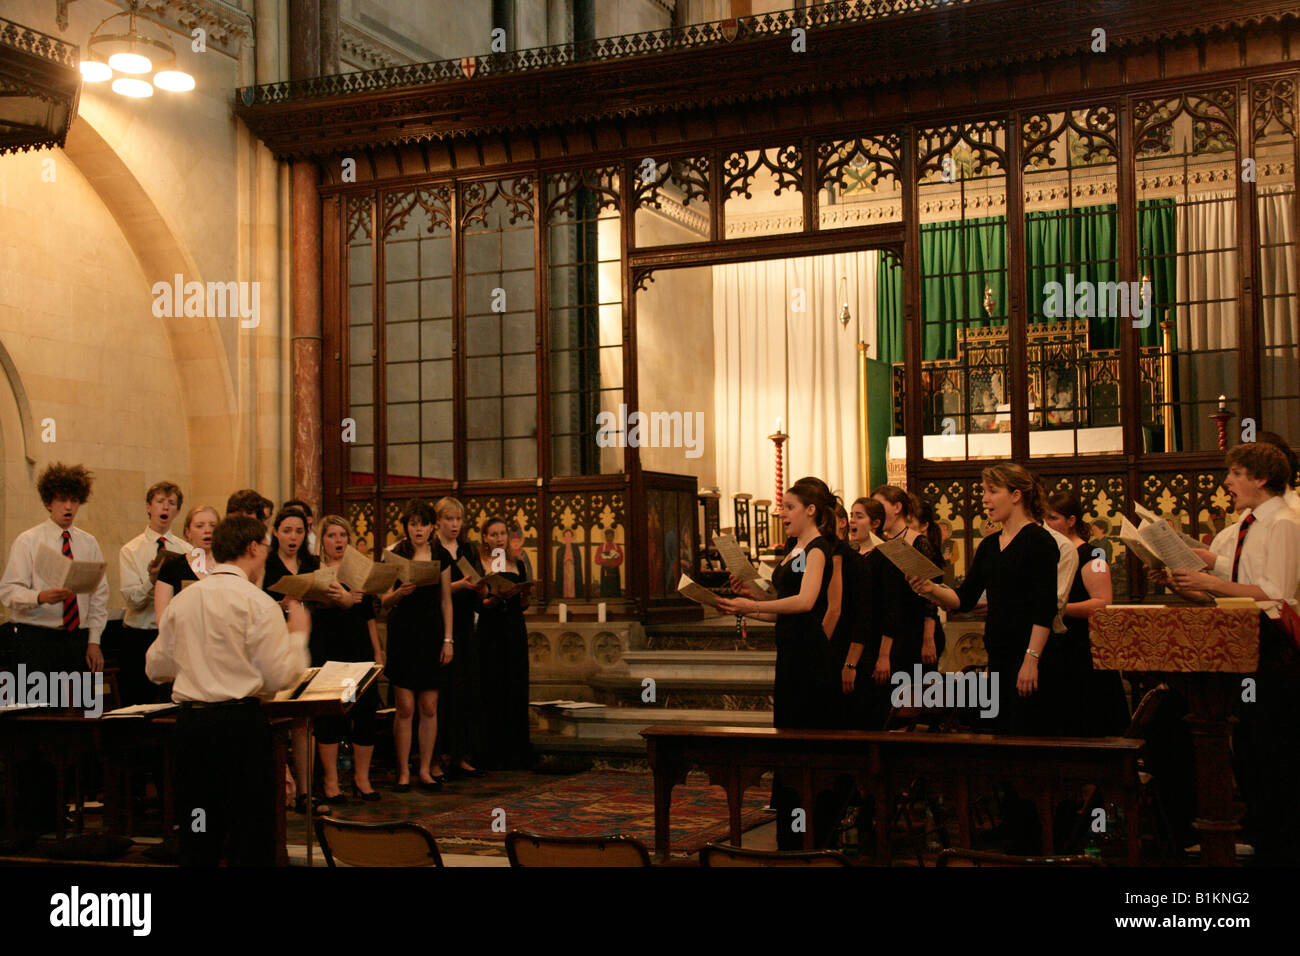 The Choir of Jesus College Cambridge singing evensong at the Crimean Church, Istanbul, Turkey - Stock Image